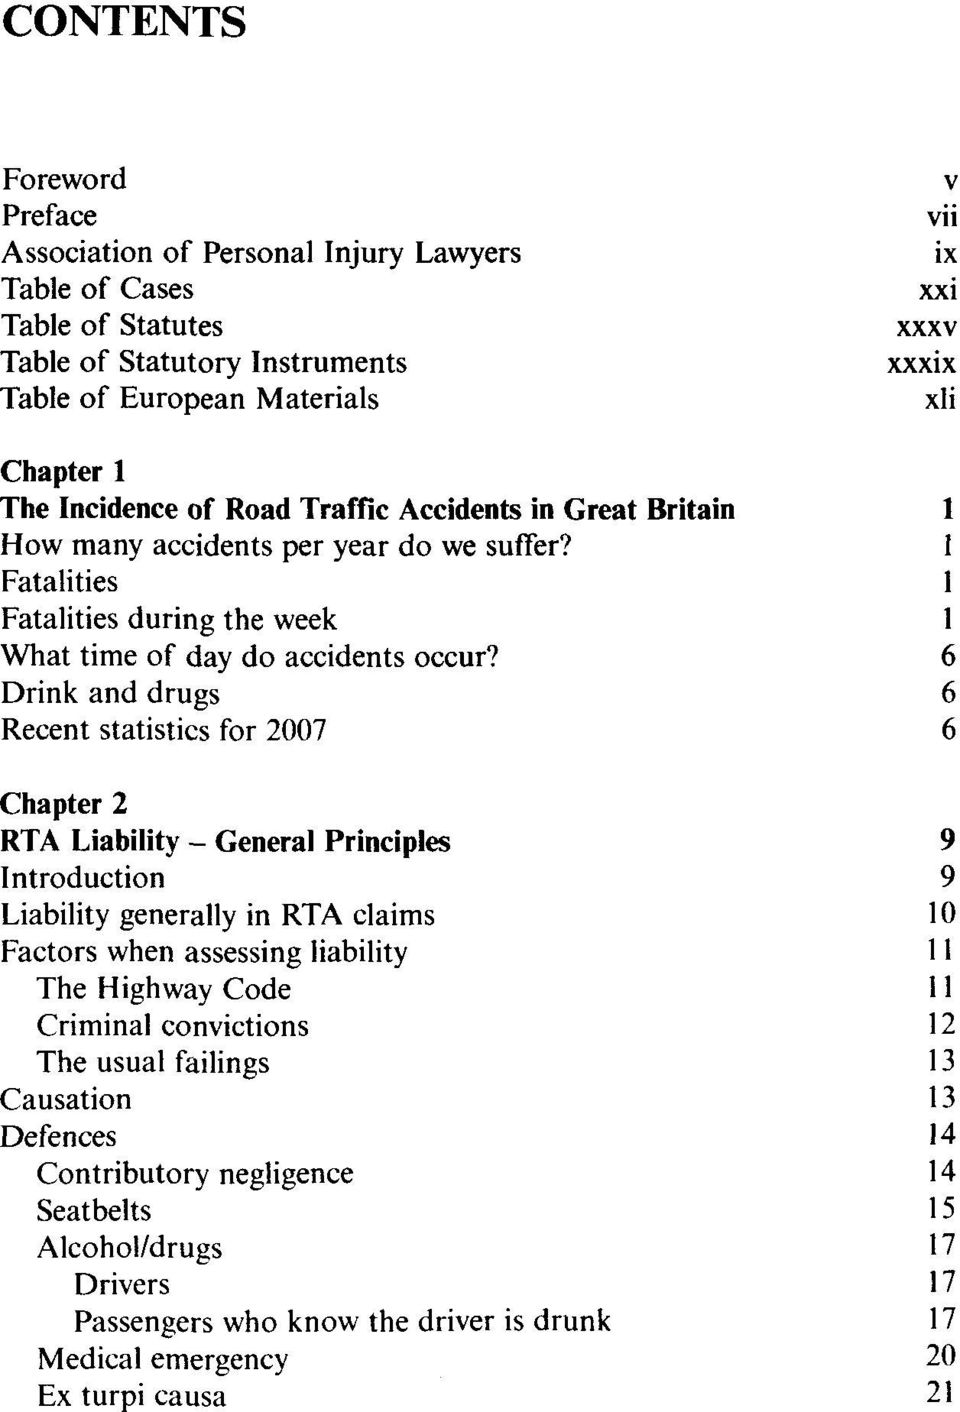 6 Drink and drugs 6 Recent statistics for 2007 6 Chapter 2 RTA Liability - General Principles 9 Introduction 9 Liability generally in RTA Claims 10 Factors when assessing liability 11 The Highway